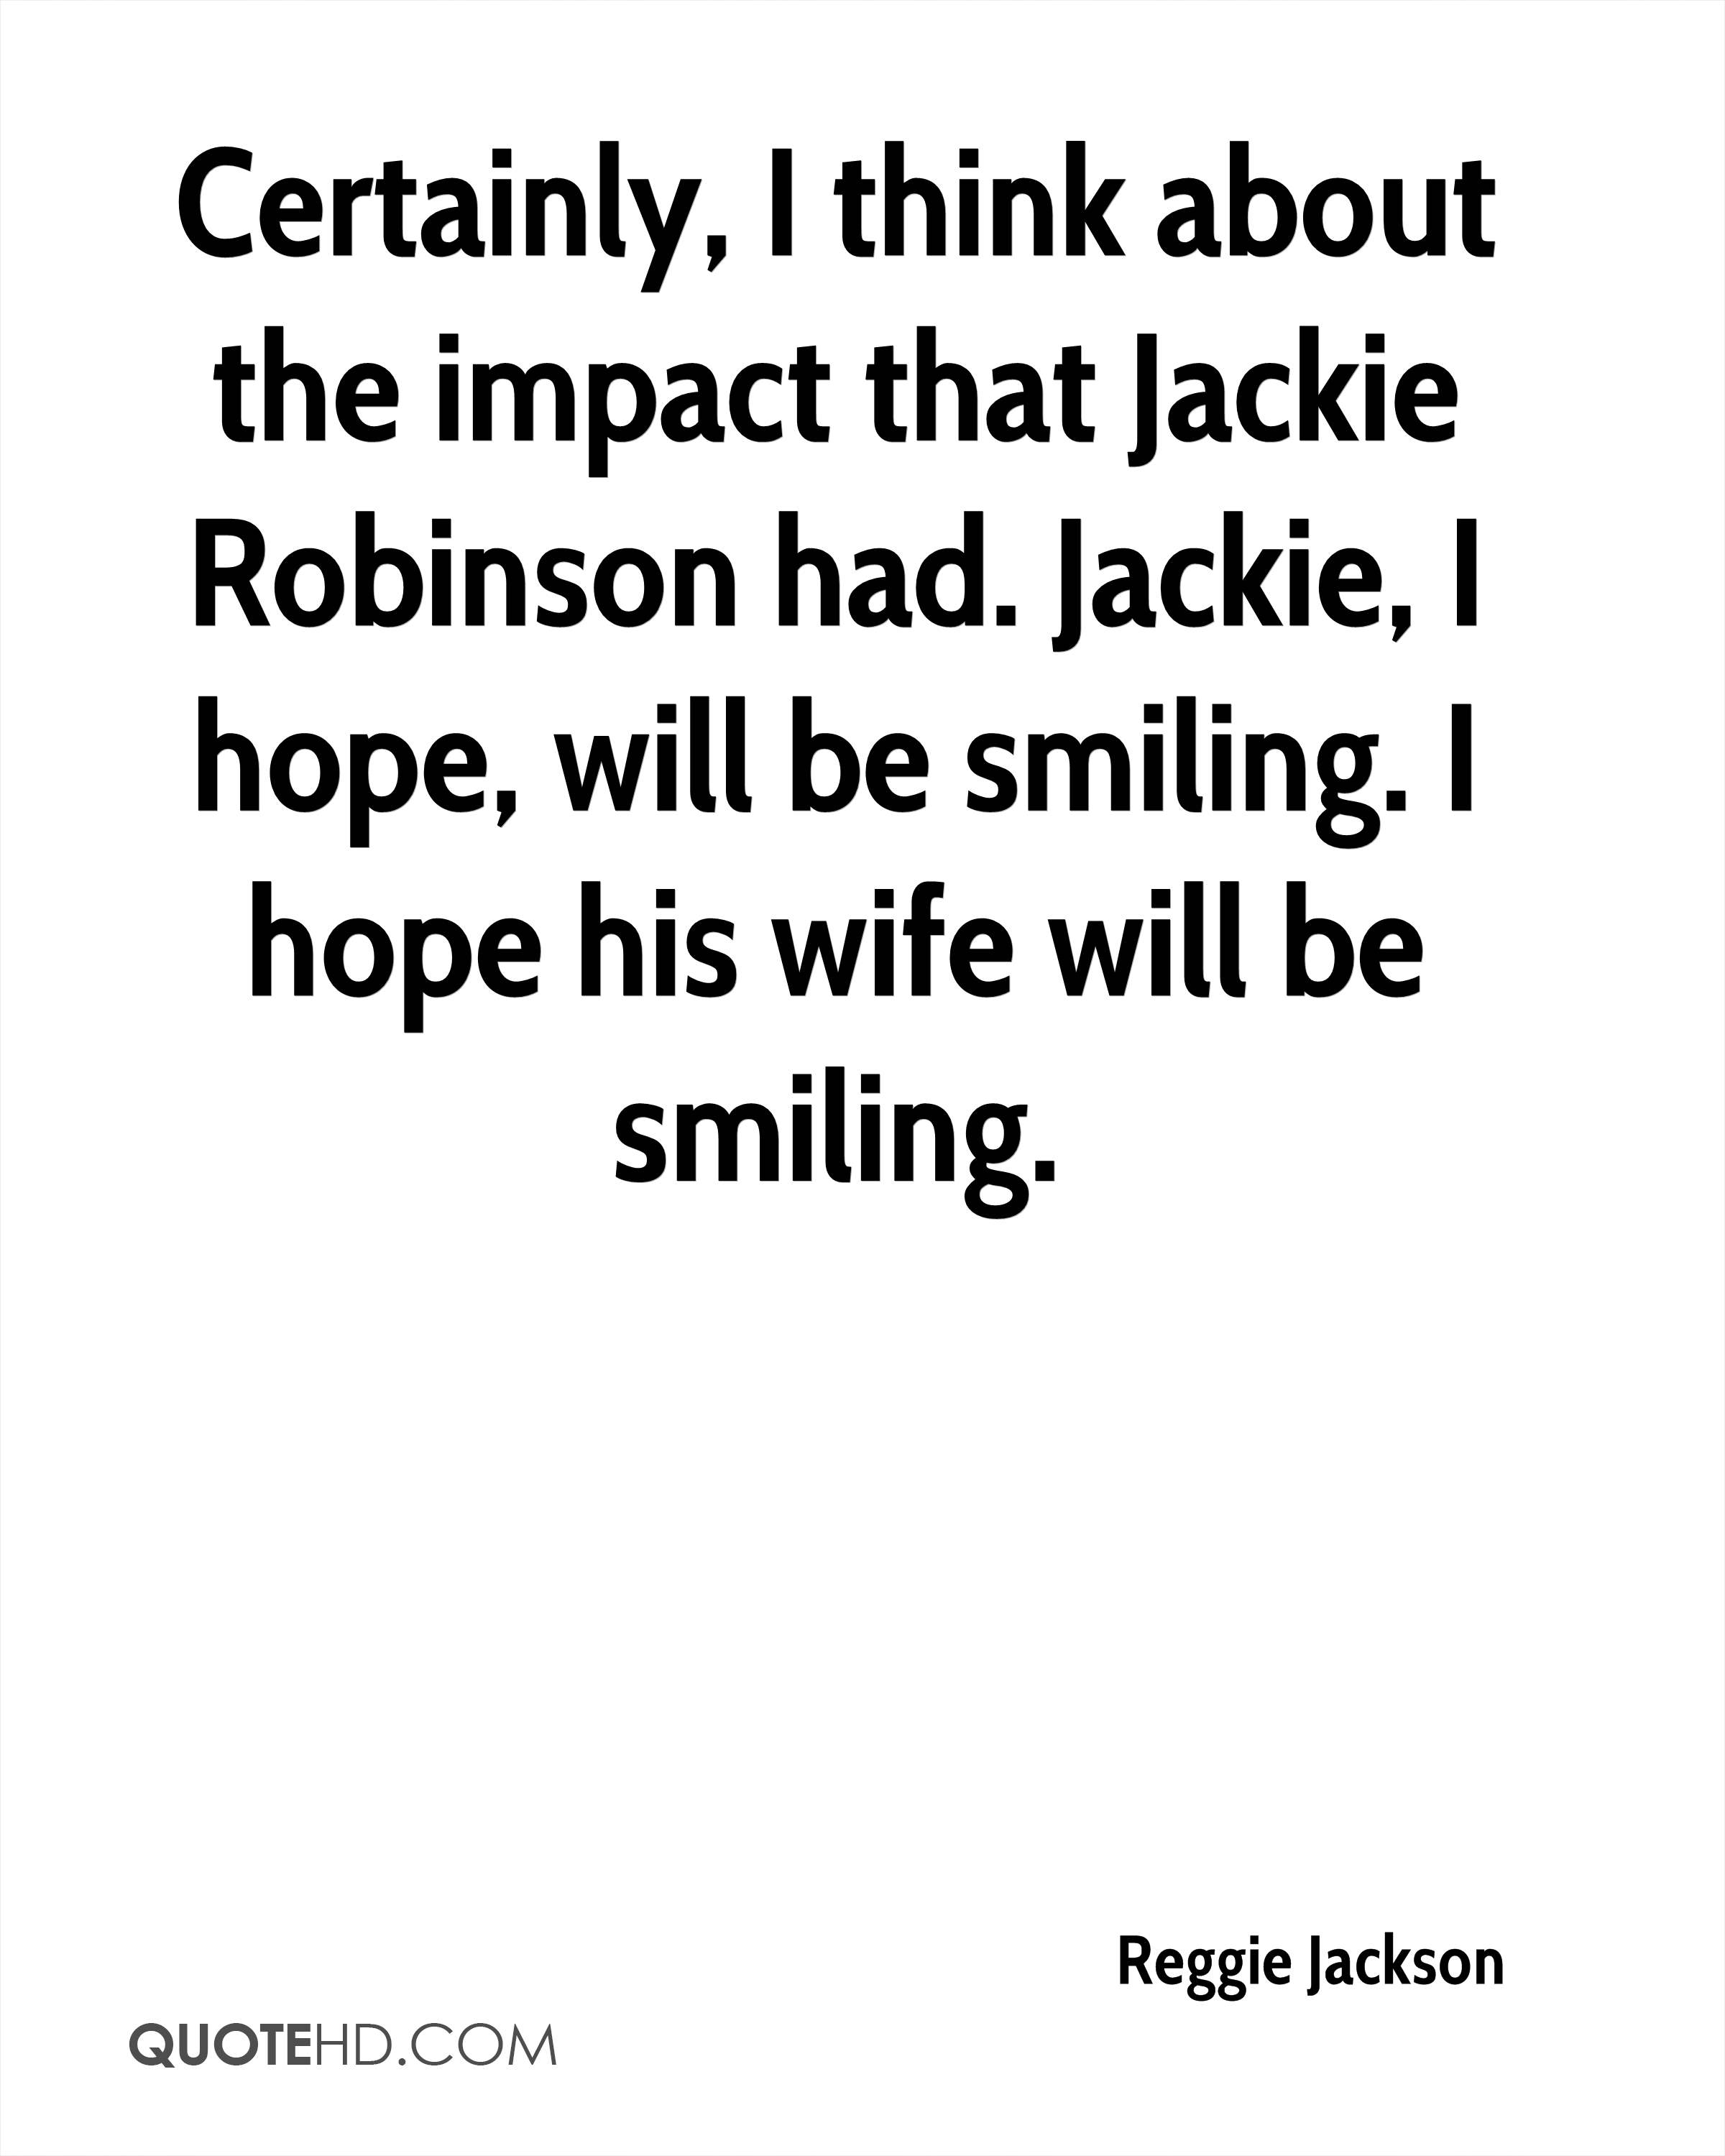 Certainly, I think about the impact that Jackie Robinson had. Jackie, I hope, will be smiling. I hope his wife will be smiling.